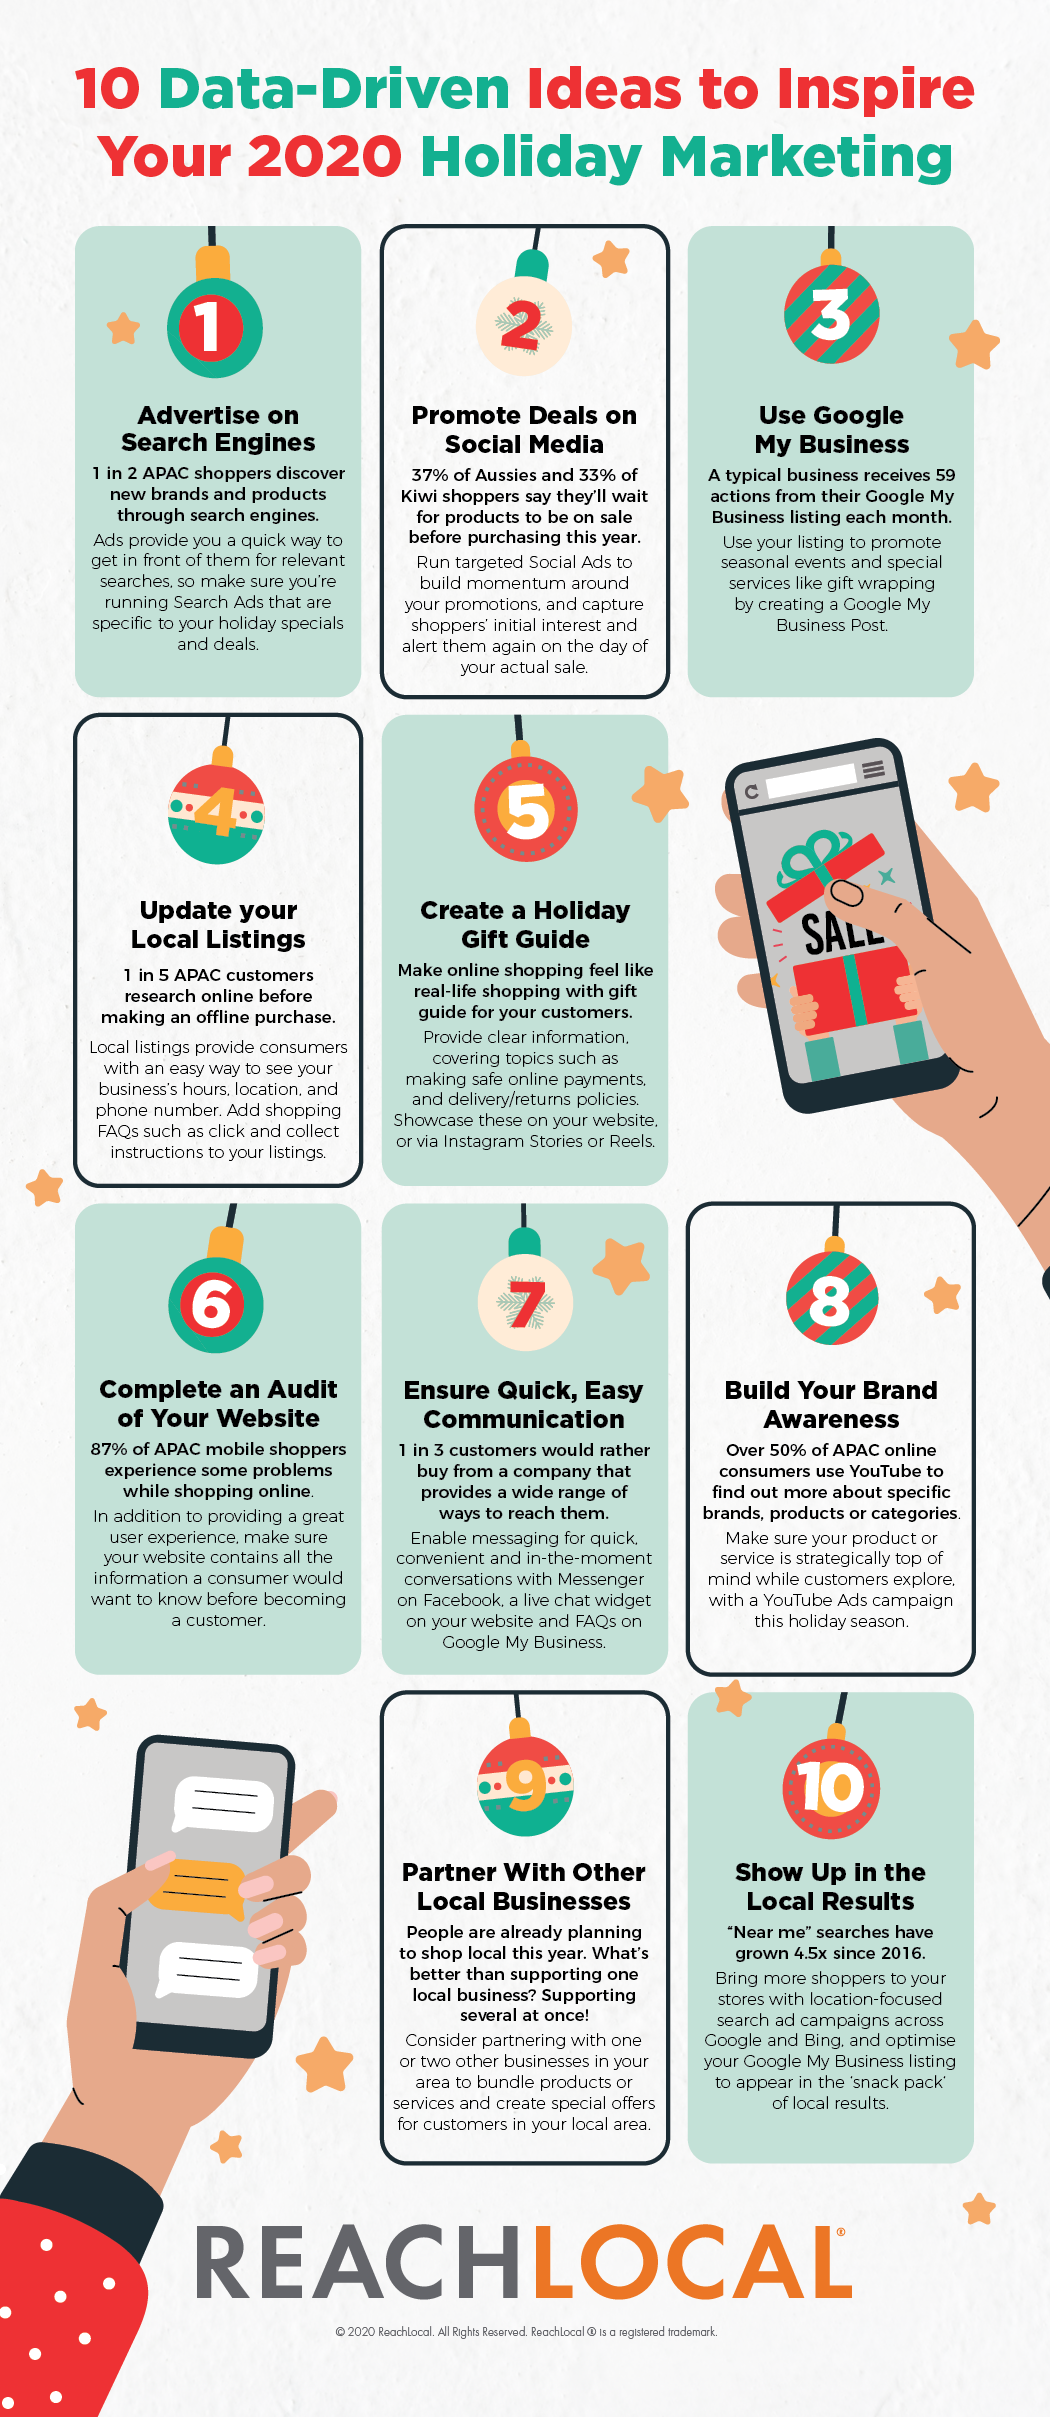 Inspire your holiday marketing with these ideas from ReachLocal